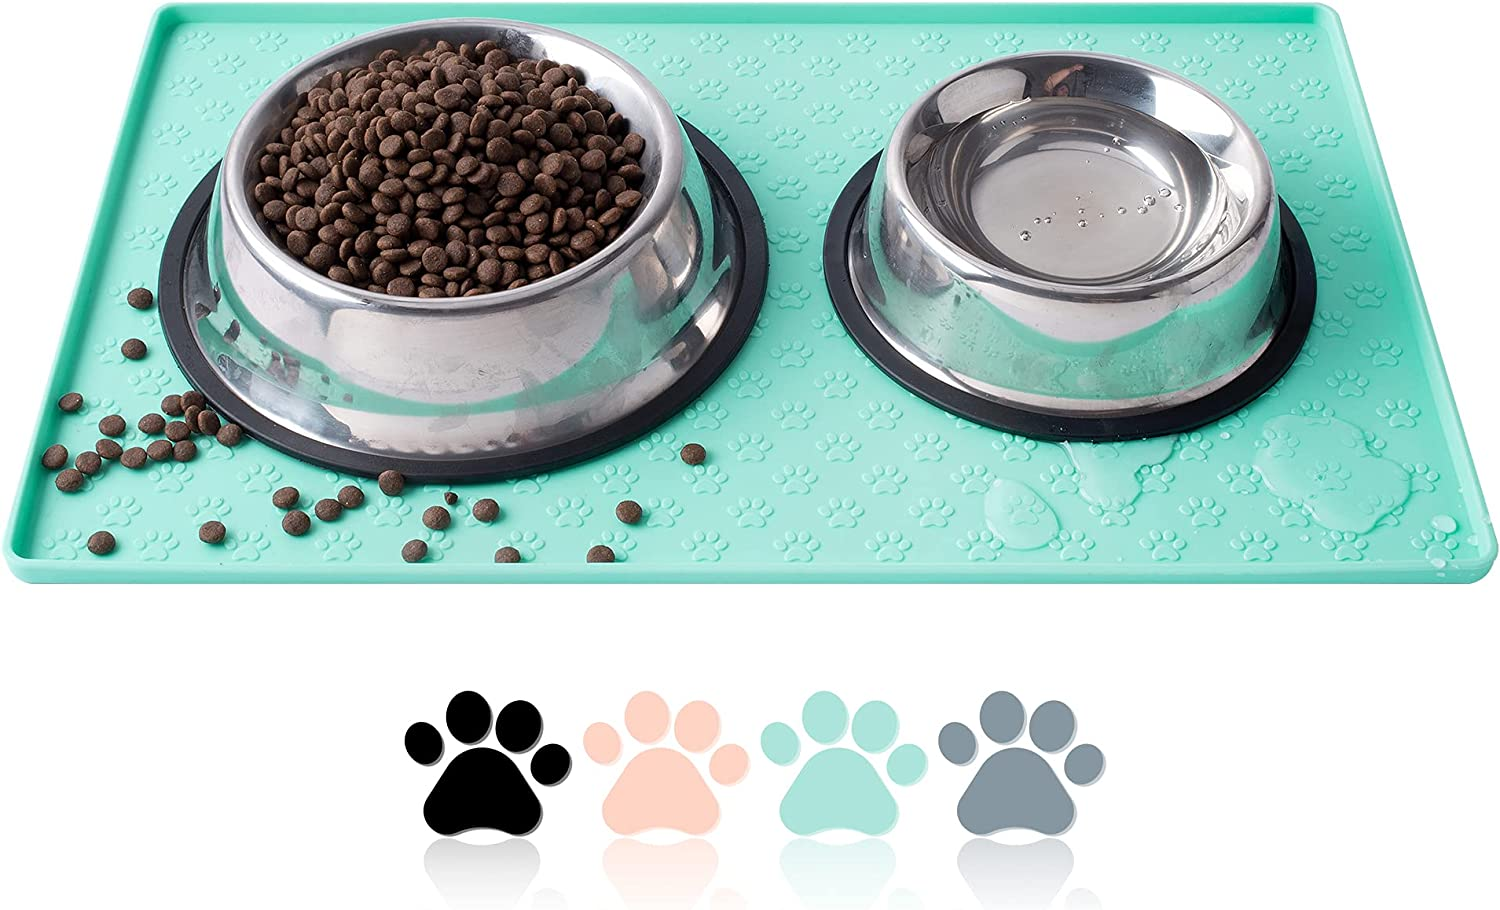 Coomazy Dog Cat Pet Feeding Mat, Silicone Waterproof Food Mat M, L- 0.4inch Raised Edges, Nonslip Pet Placemat Bowl Tray to Stop Food Spills and Water Messes Out to Floor